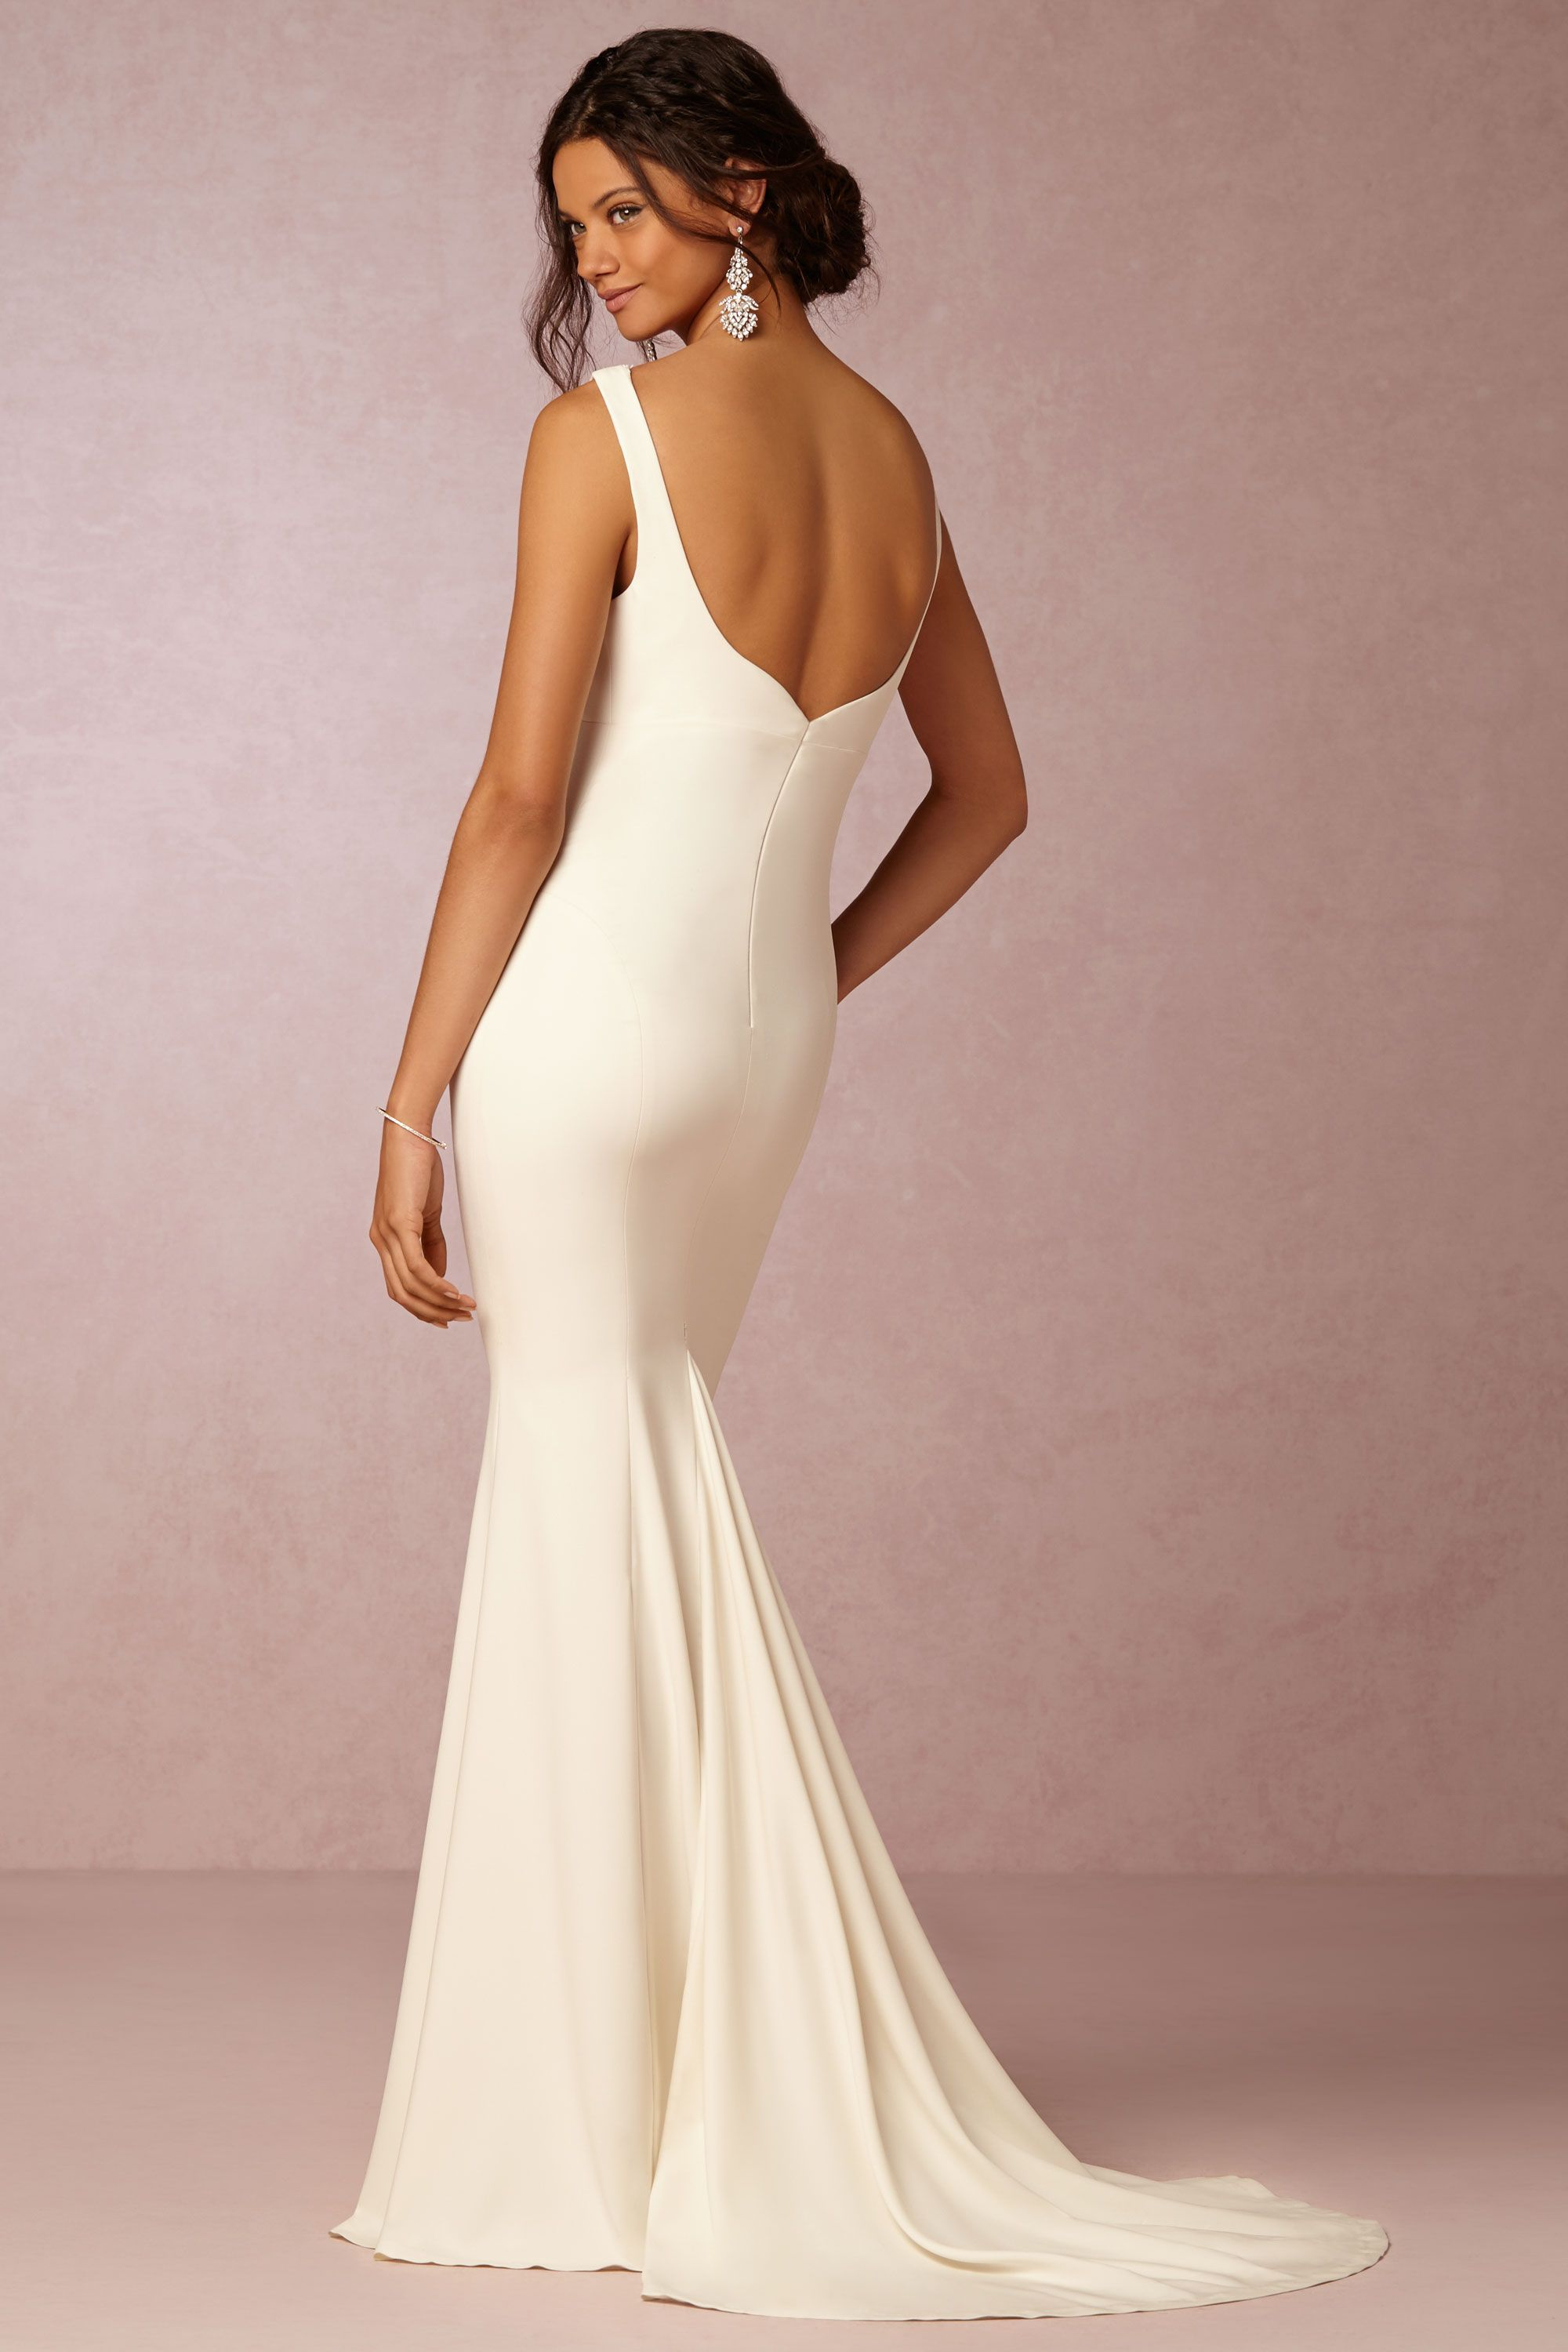 Abigail Gown Nicole Miller Wedding Dresses Bridal Gowns Mermaid Bridal Dresses